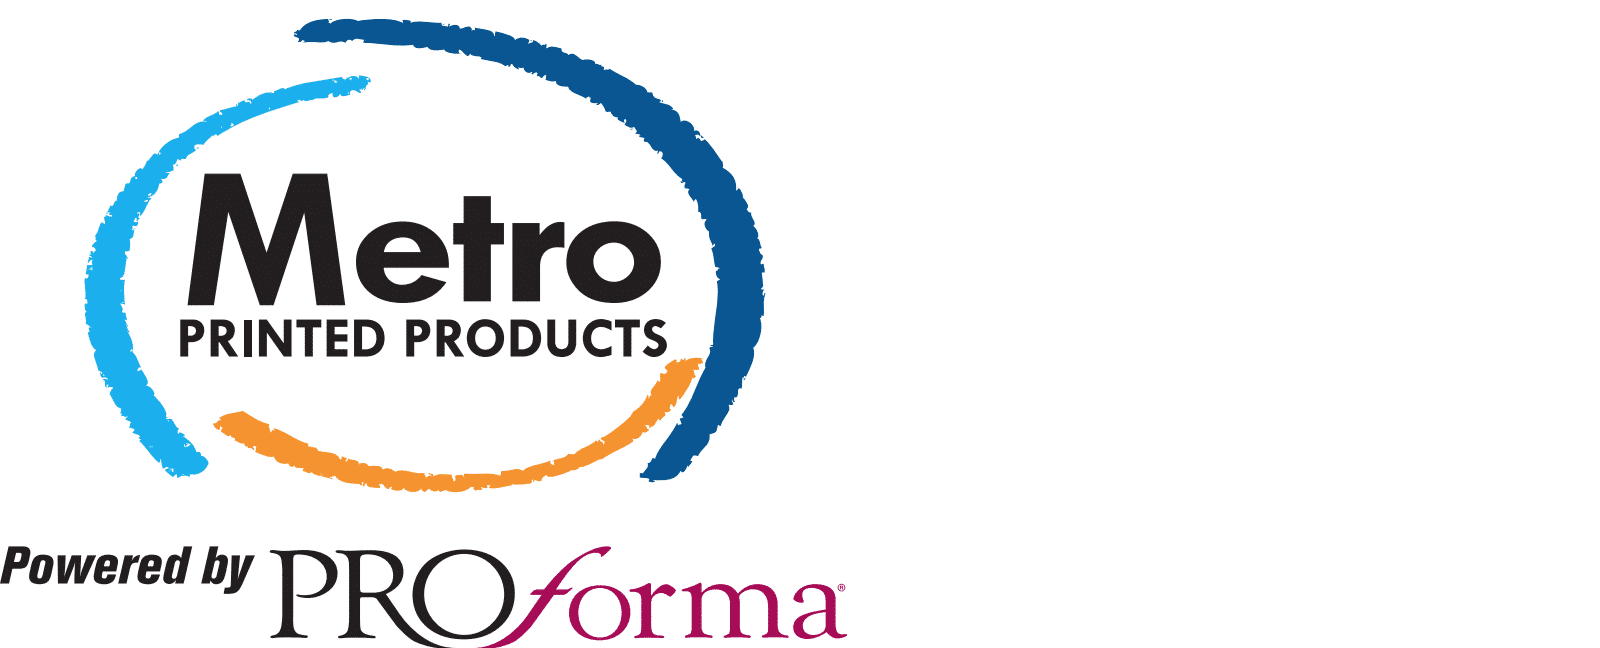 Metro Printed Products Logo